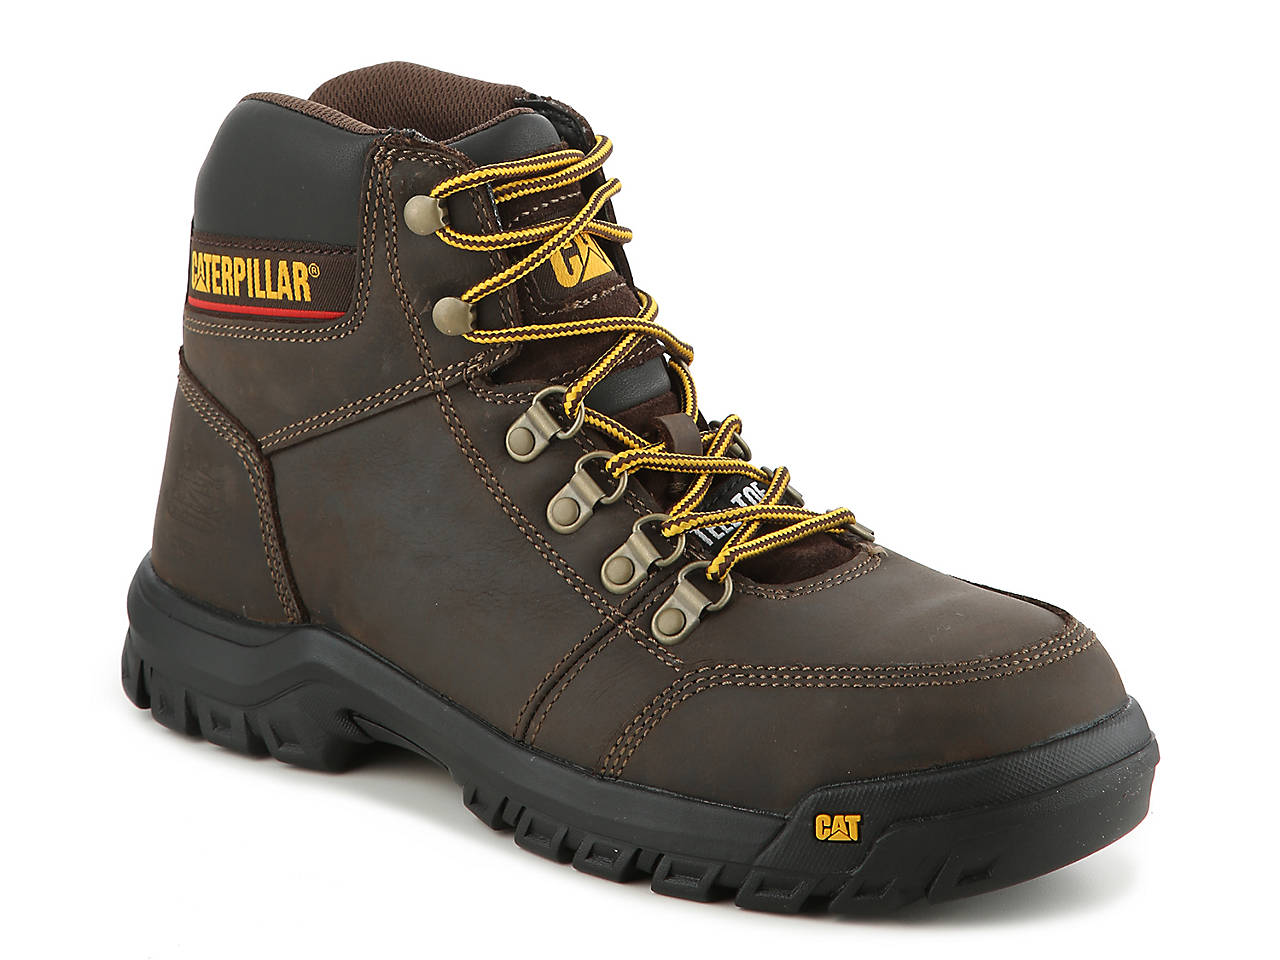 29a43e572831 Caterpillar Outline ST Steel Toe Work Boot Men's Shoes | DSW